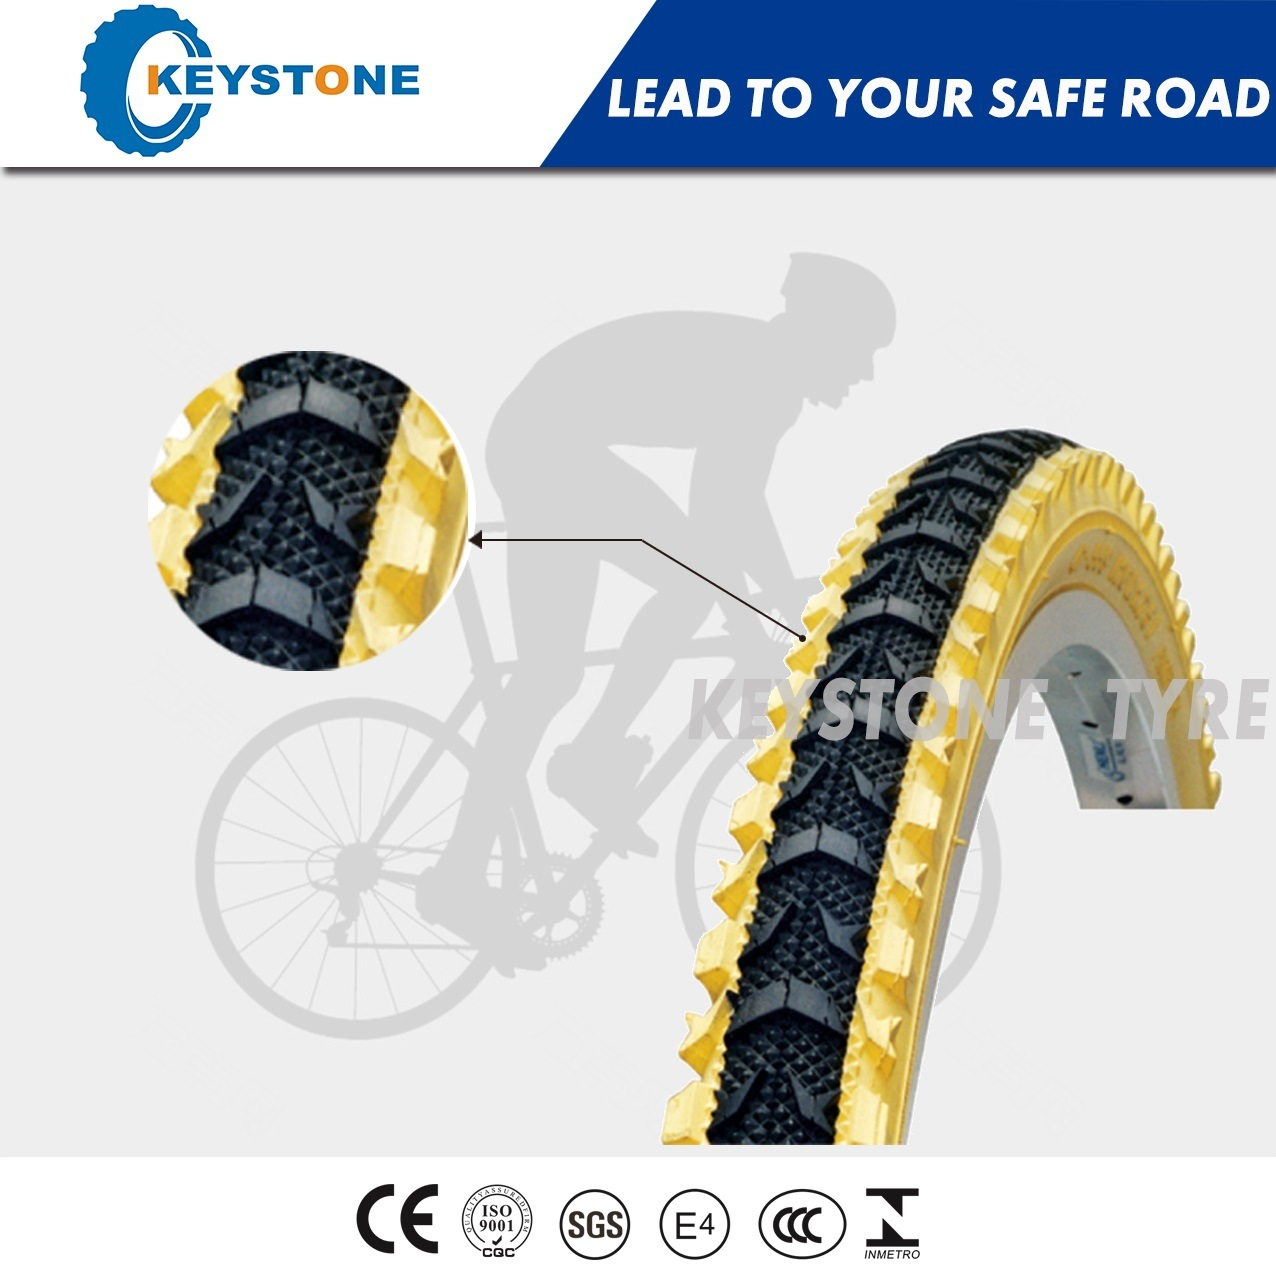 ECE Approved Mountain Bike Tire with Super Stablity 60 Tpi Casing 24X2.35